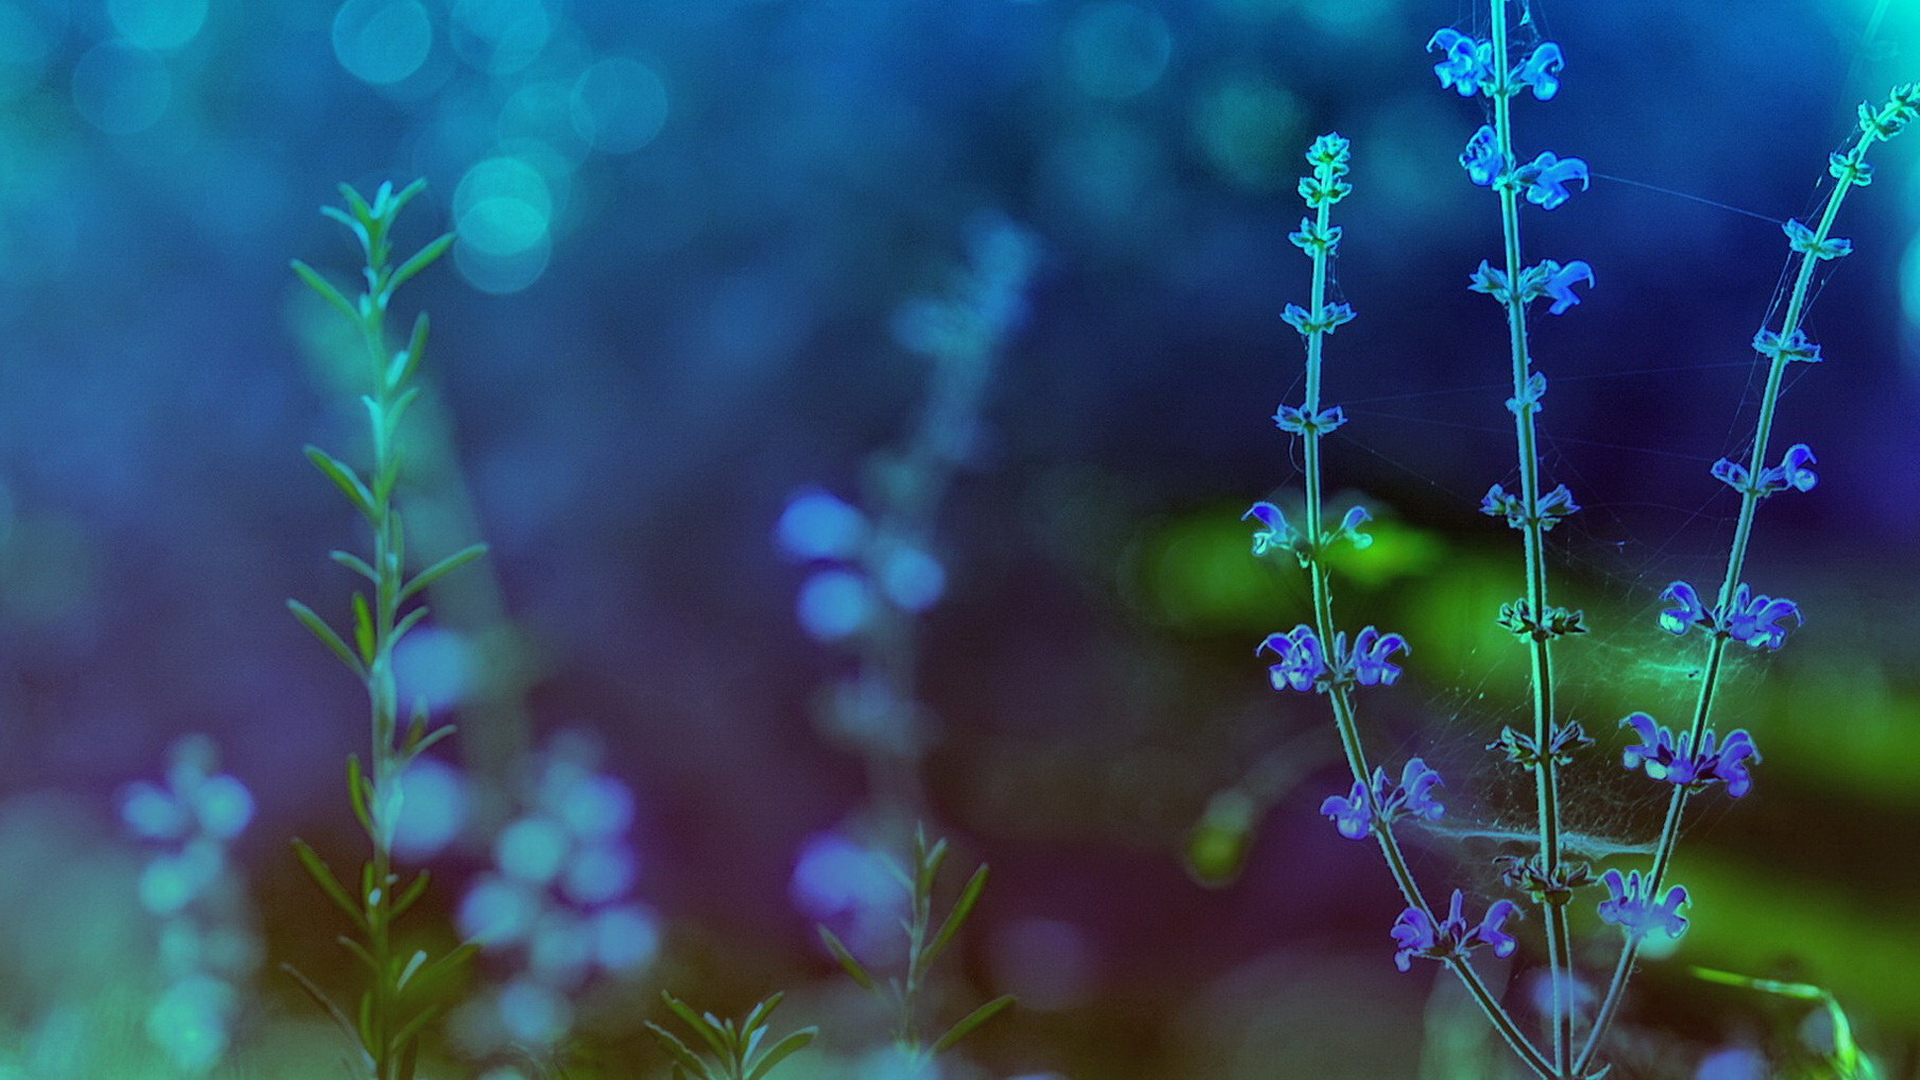 Best HD Spring Flower Theme Wallpapers Blue Background 1920x1080